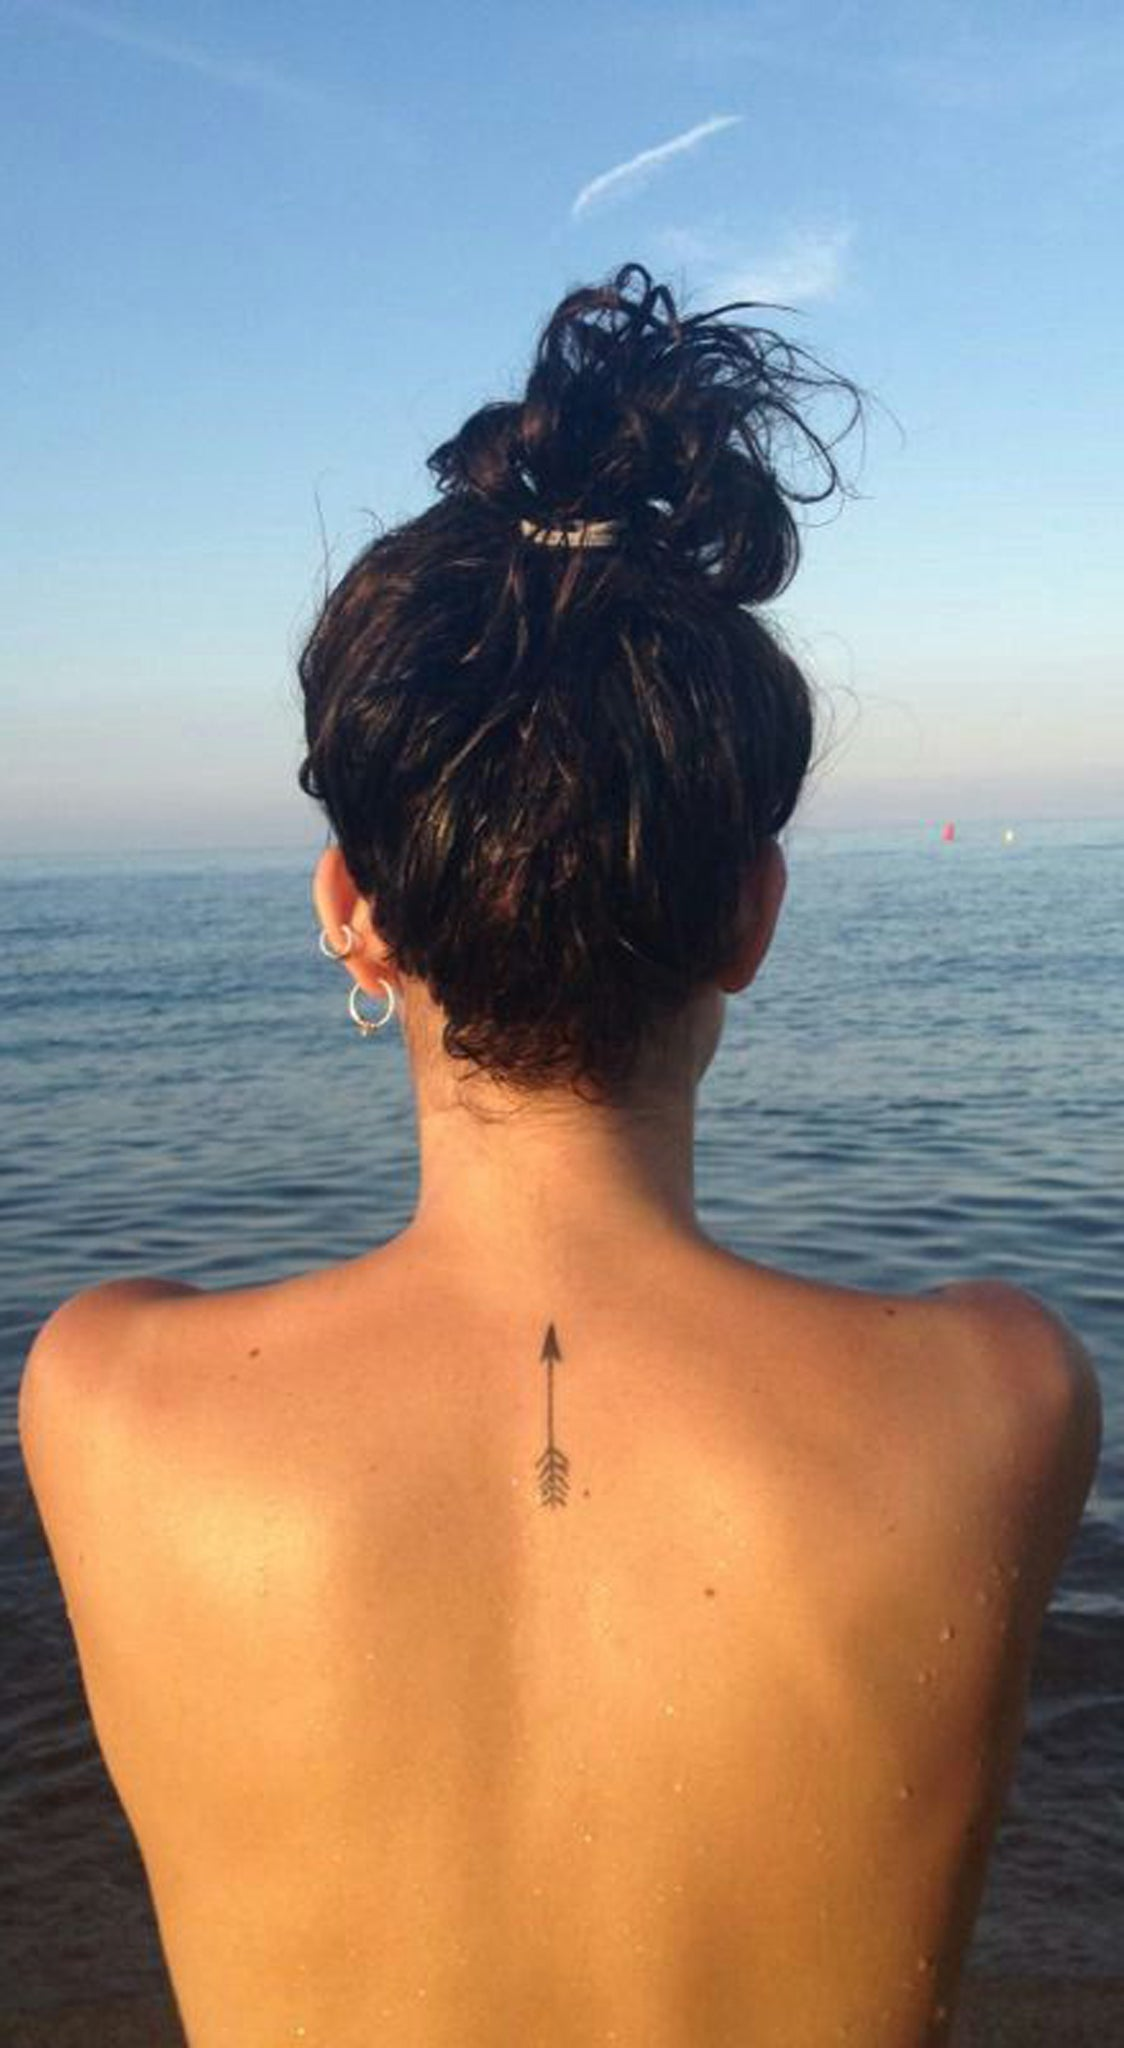 Tattoo Small Back: 50+ Inspirational Spine Tattoo Ideas For Women With